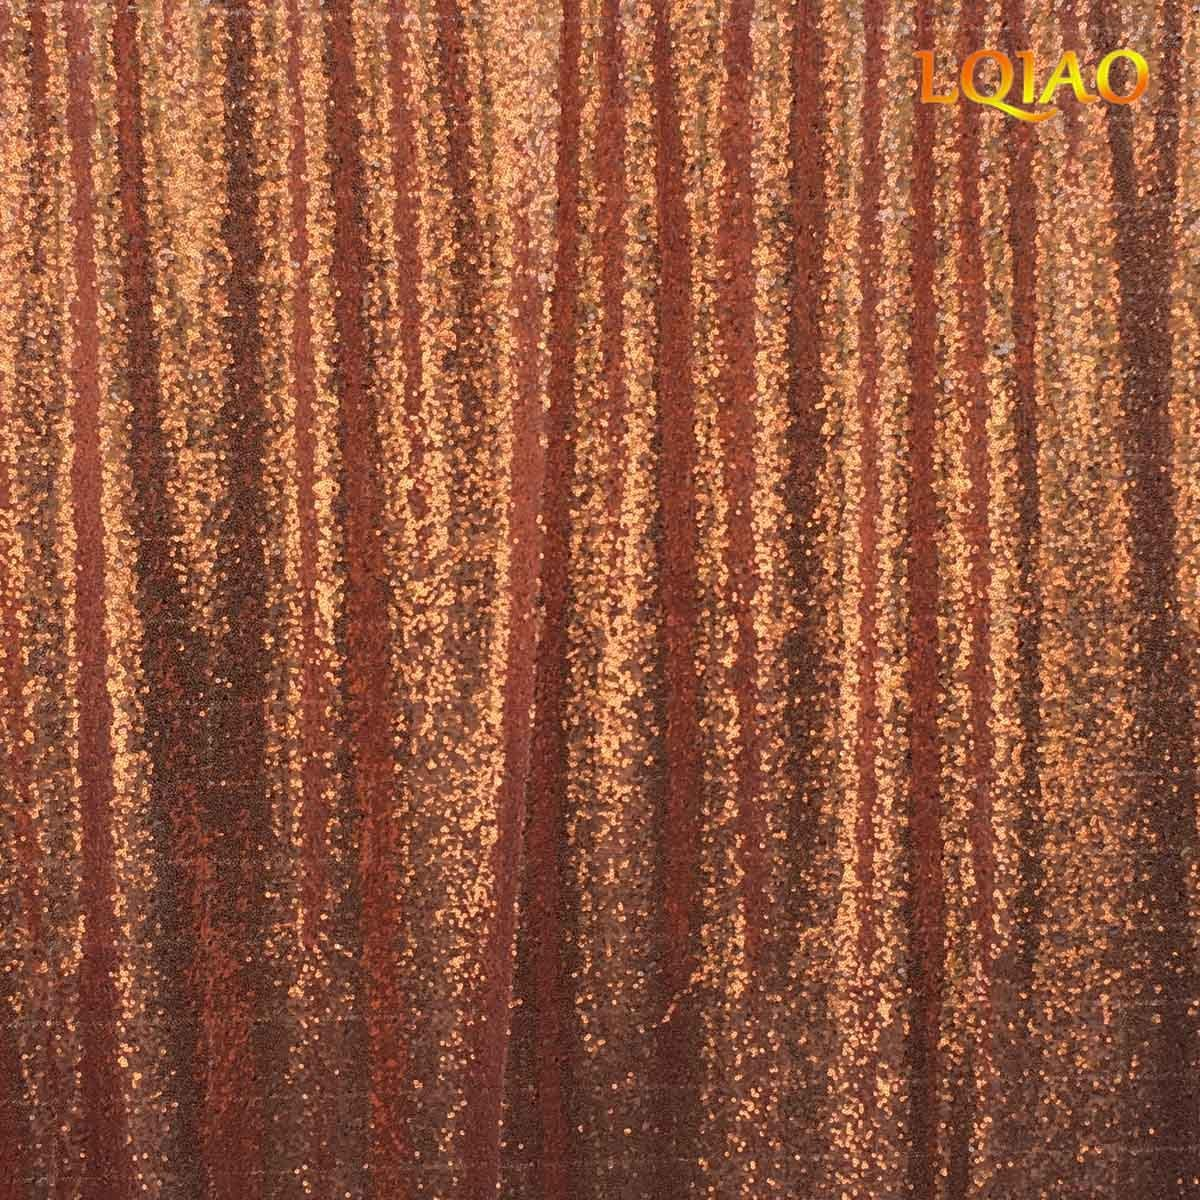 LQIAO 20FTx10FT-600CMx300CM Rose Gold Sequin Backdrops,Party Wedding Photo Booth Backdrop Decoration,Sequin curtains,Drape,Sequin panels